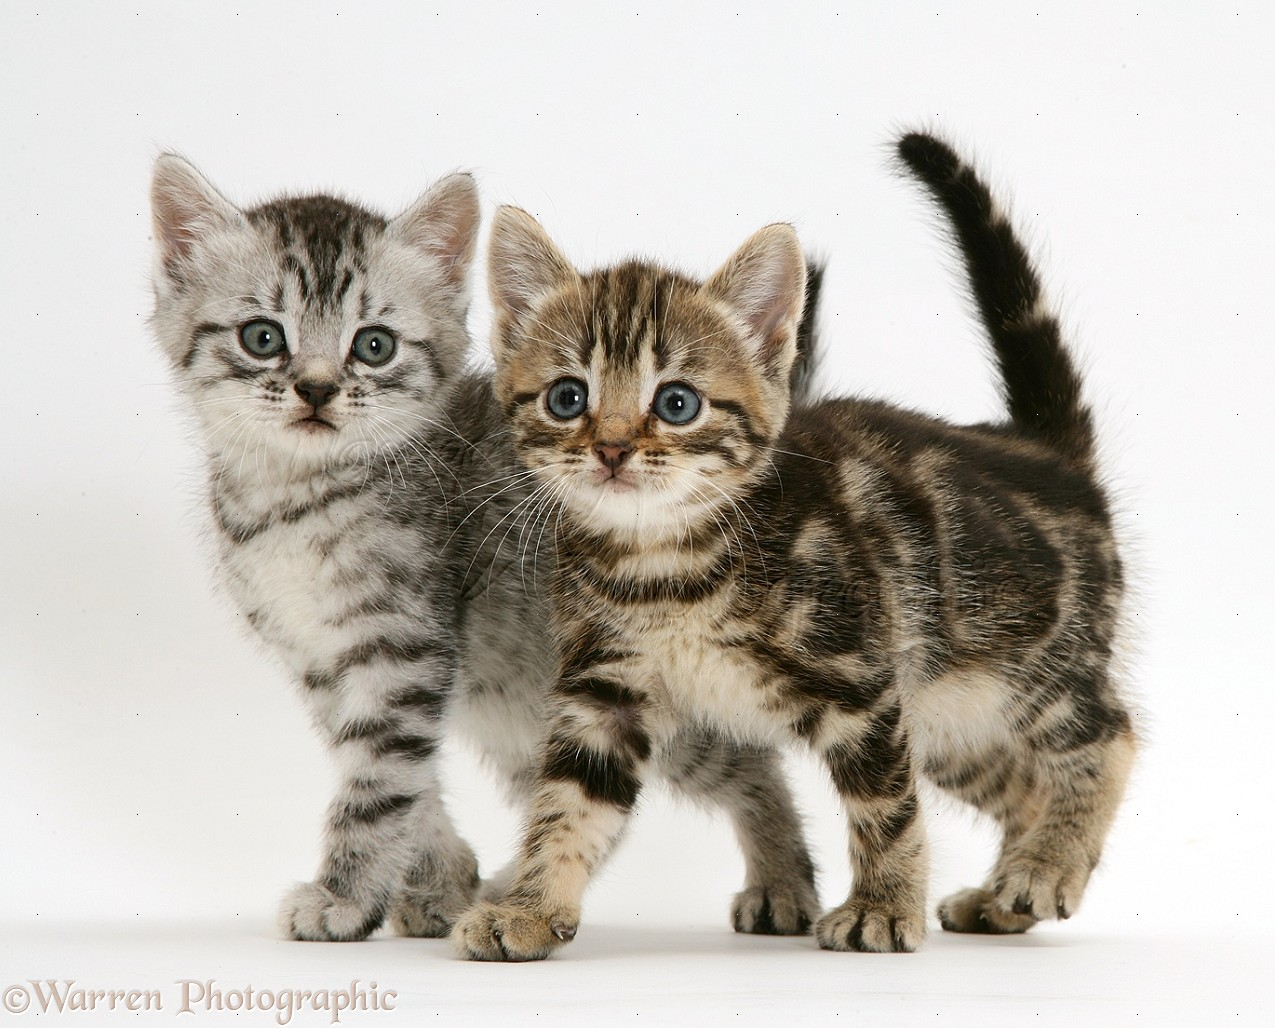 silver and brown tabby kittens photo wp14934